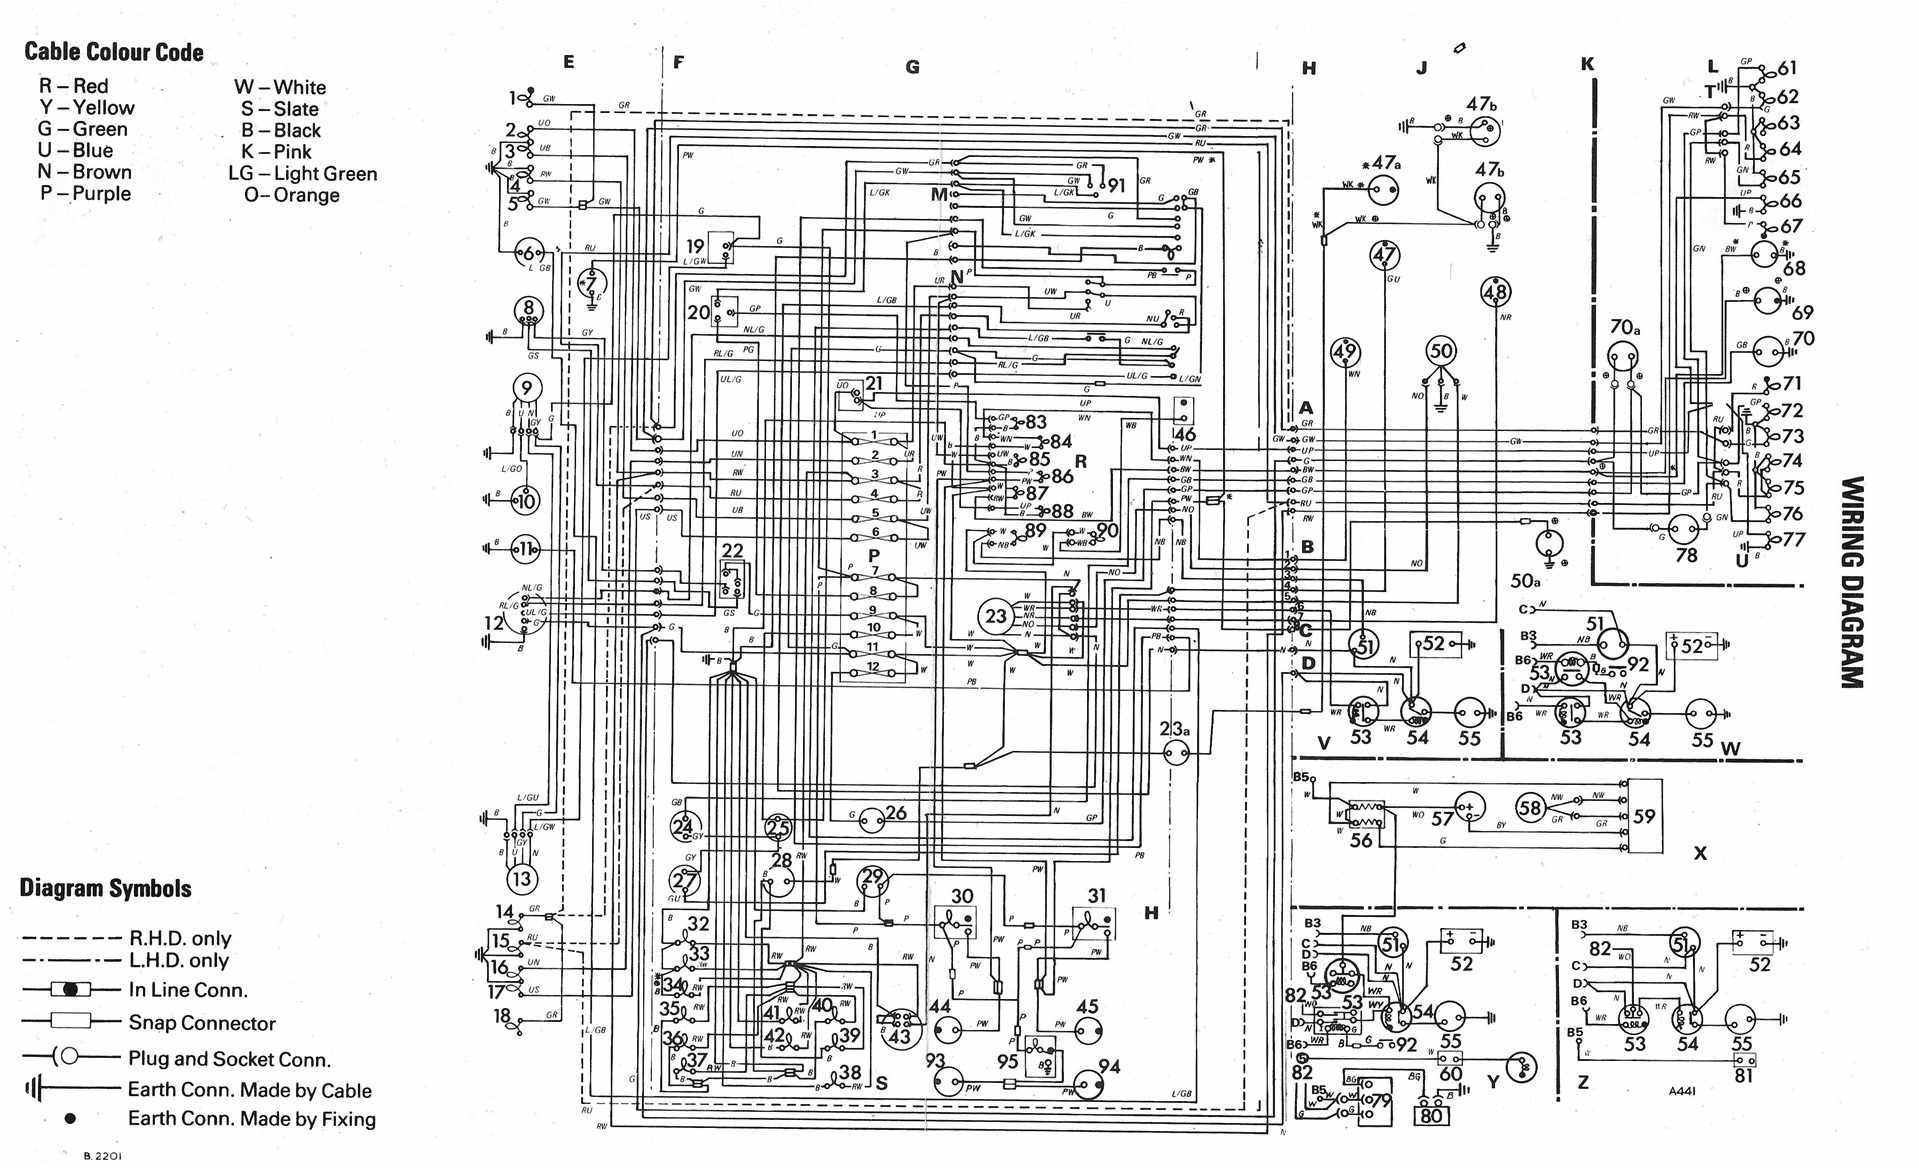 Electrical Wiring Diagram Of Volkswagen Golf Mk1 Volkswagengolfmk1 Vw Up Volkswagen Golf Mk1 Vw Golf